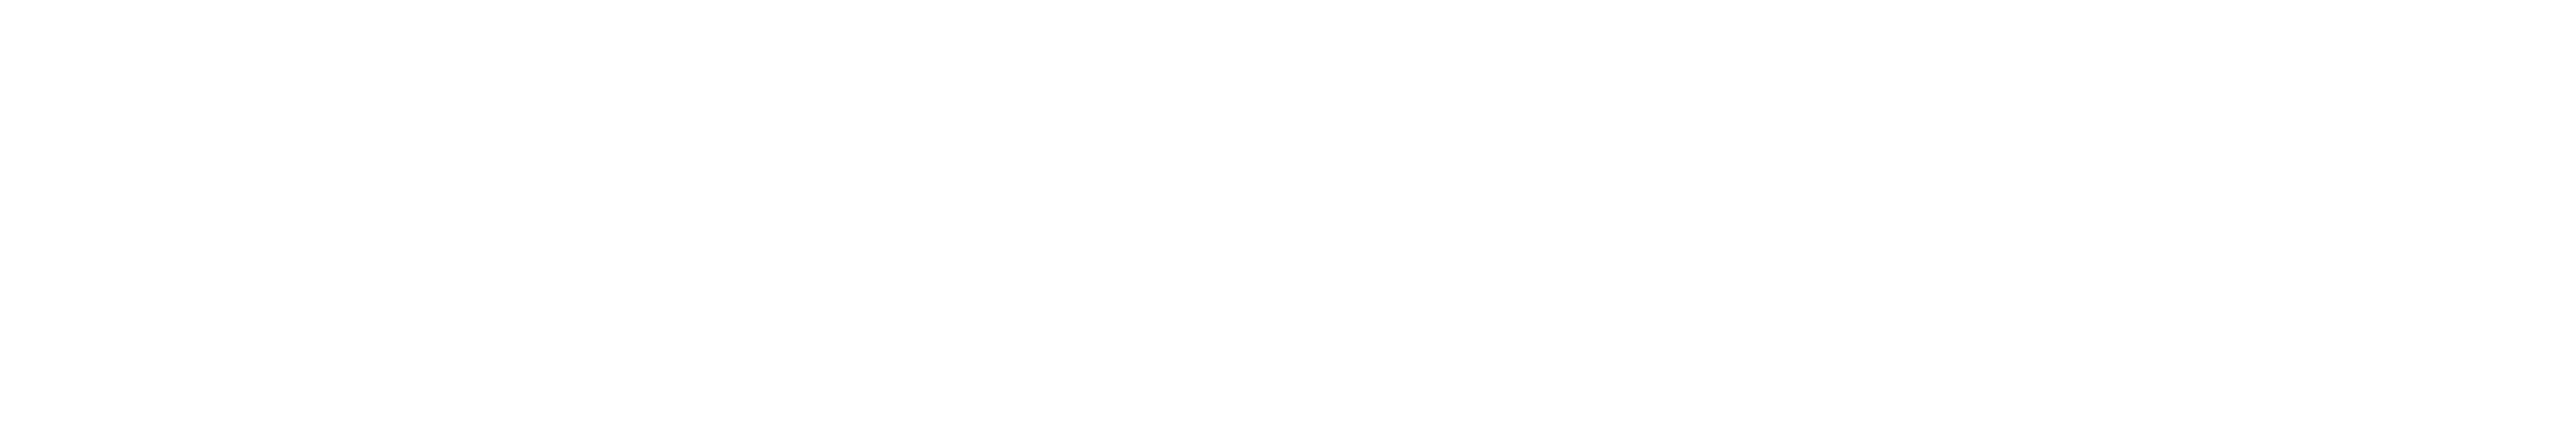 UTHealth Medical School logo